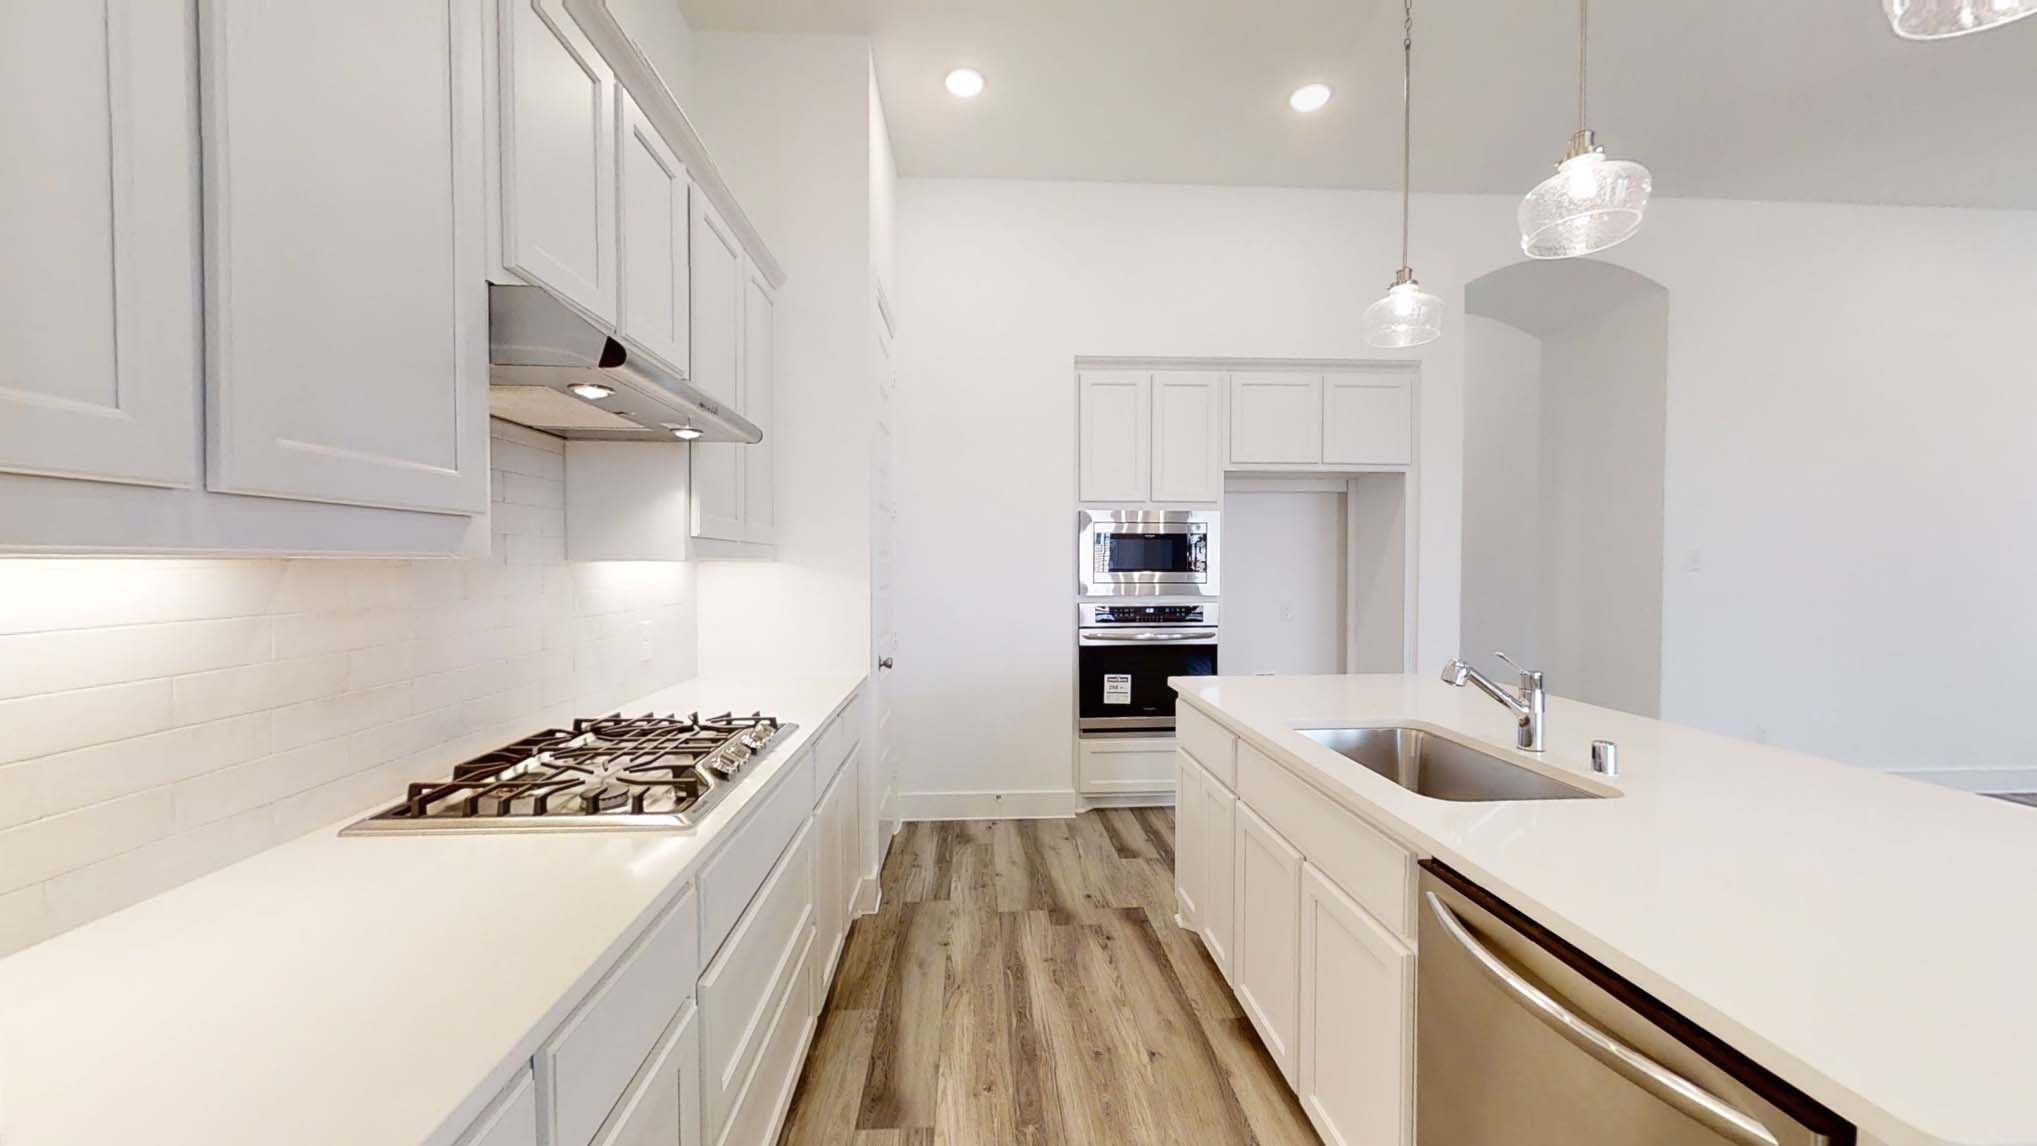 Kitchen featured in the Plan Glenhurst By Highland Homes in Dallas, TX